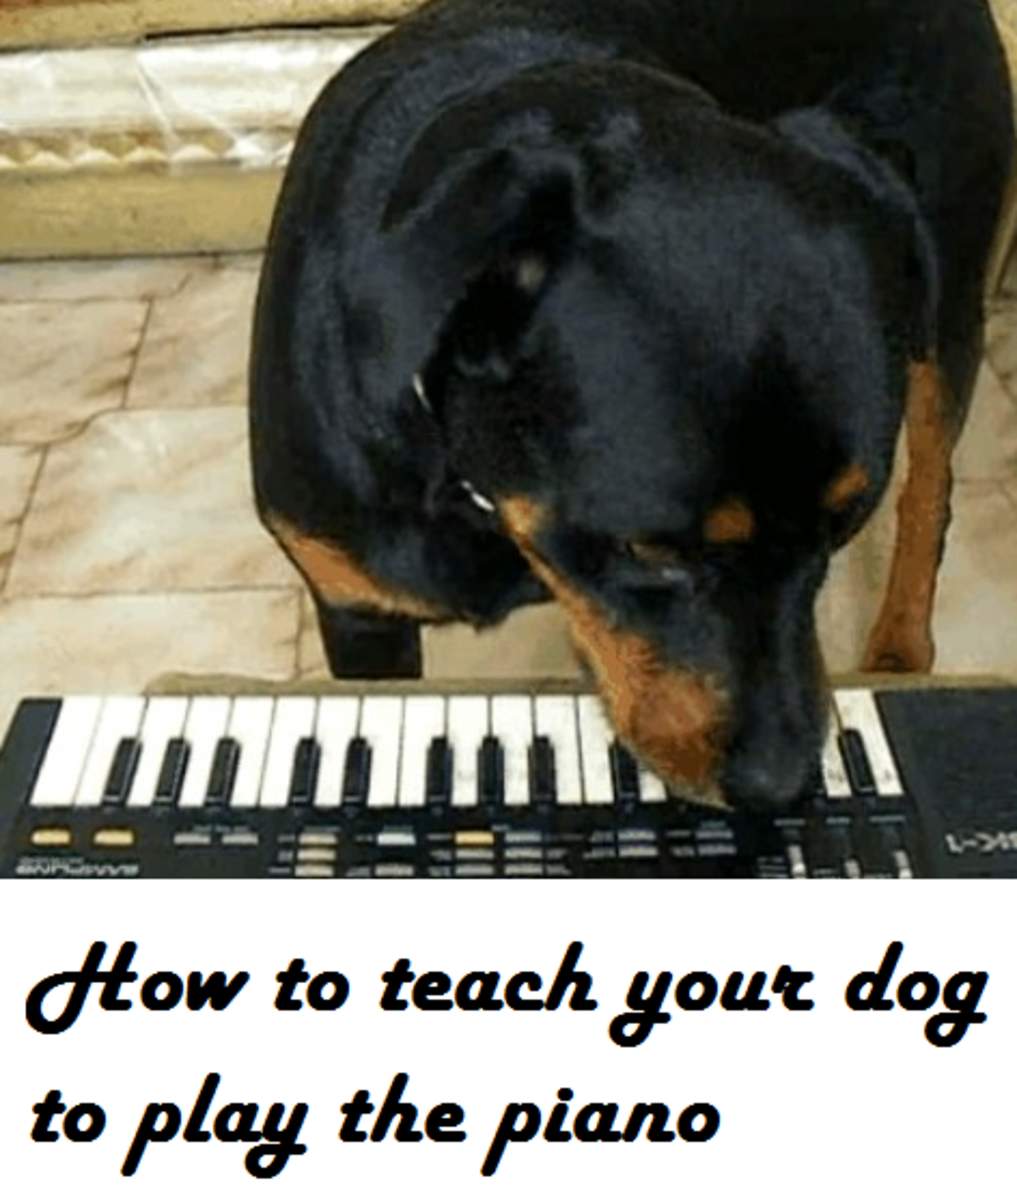 How to Teach Your Dog to Play the Piano